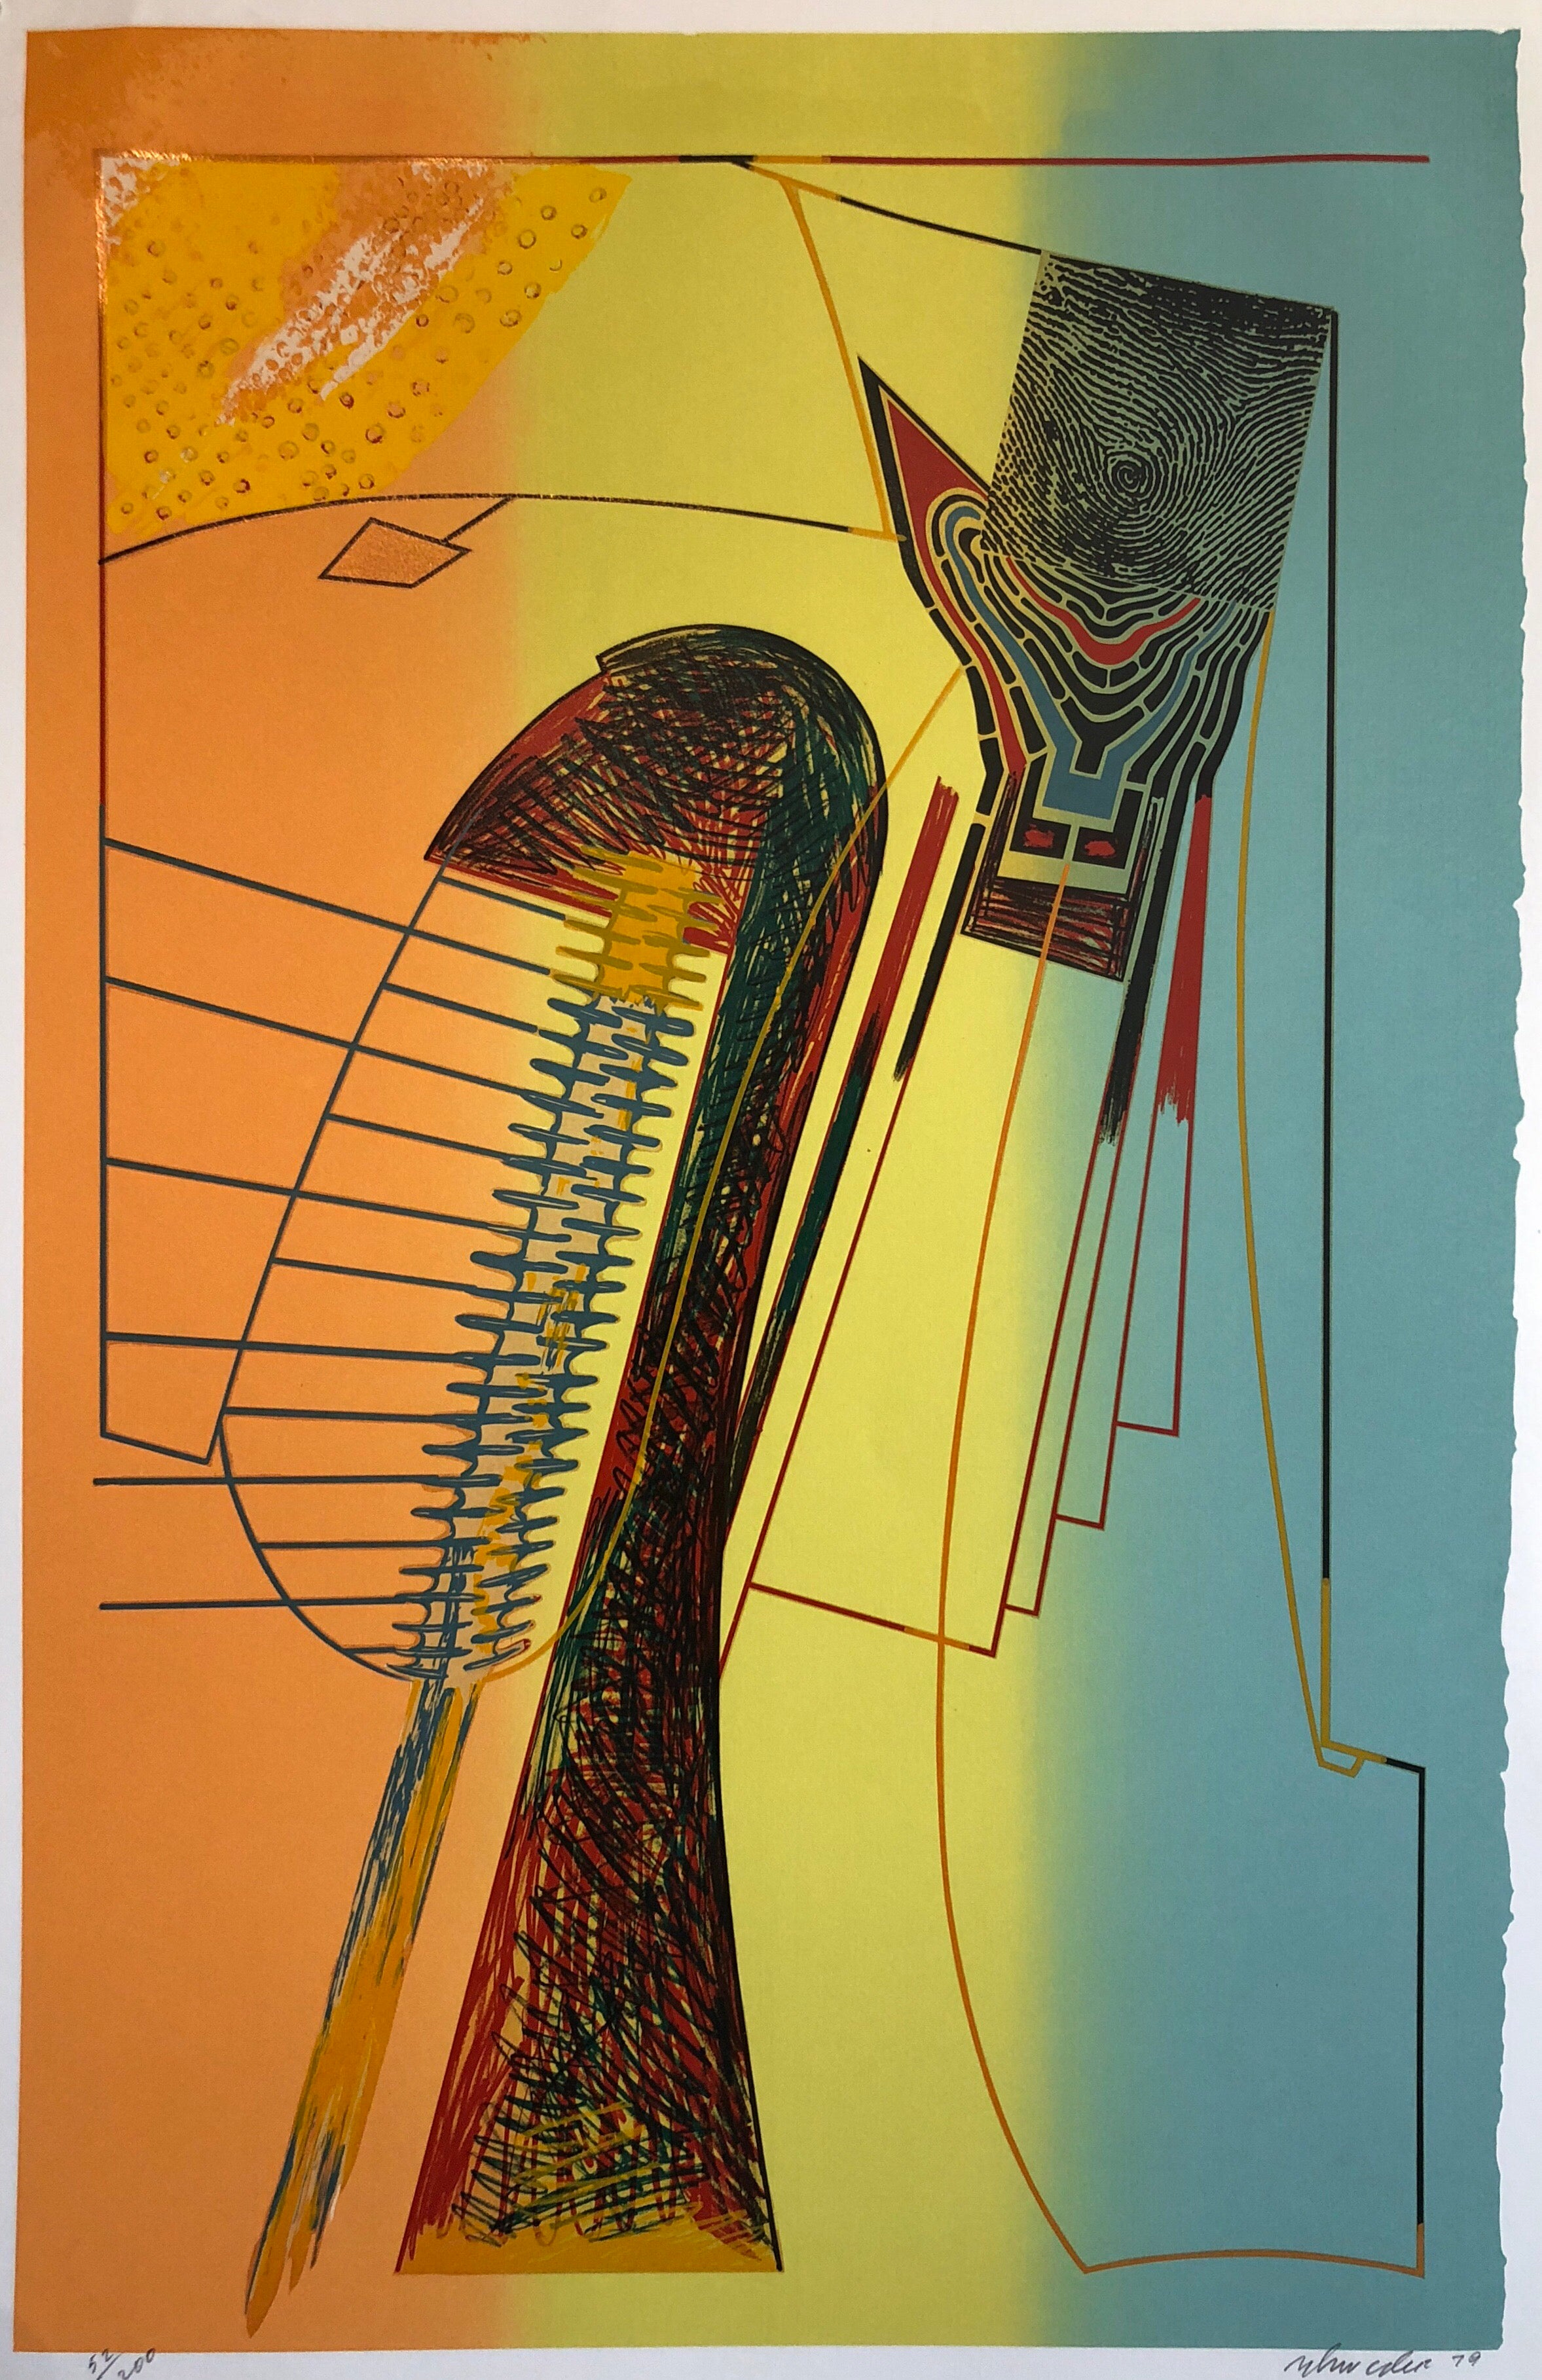 """Surrealist Architectural Landscape """"Fall for it"""" 1970s Chicago Modernist"""